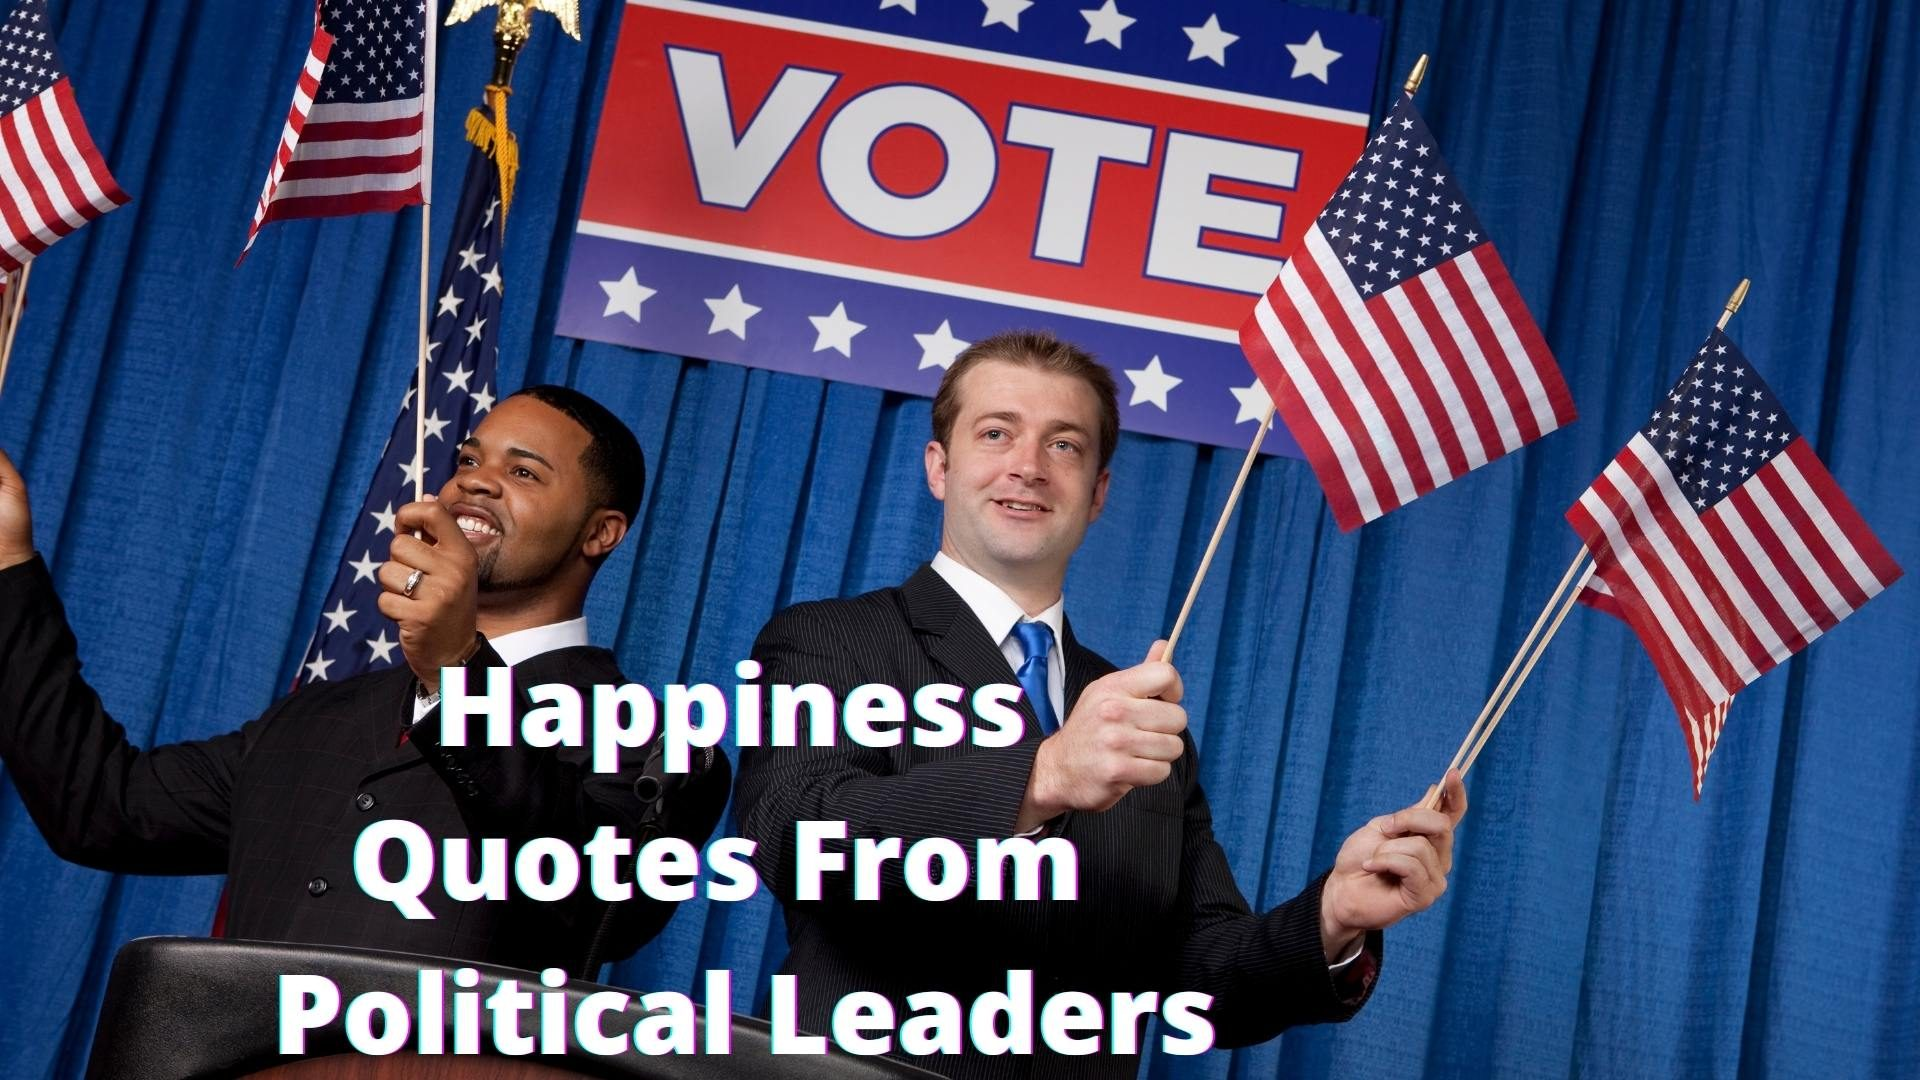 short happiness quotes from political leaders